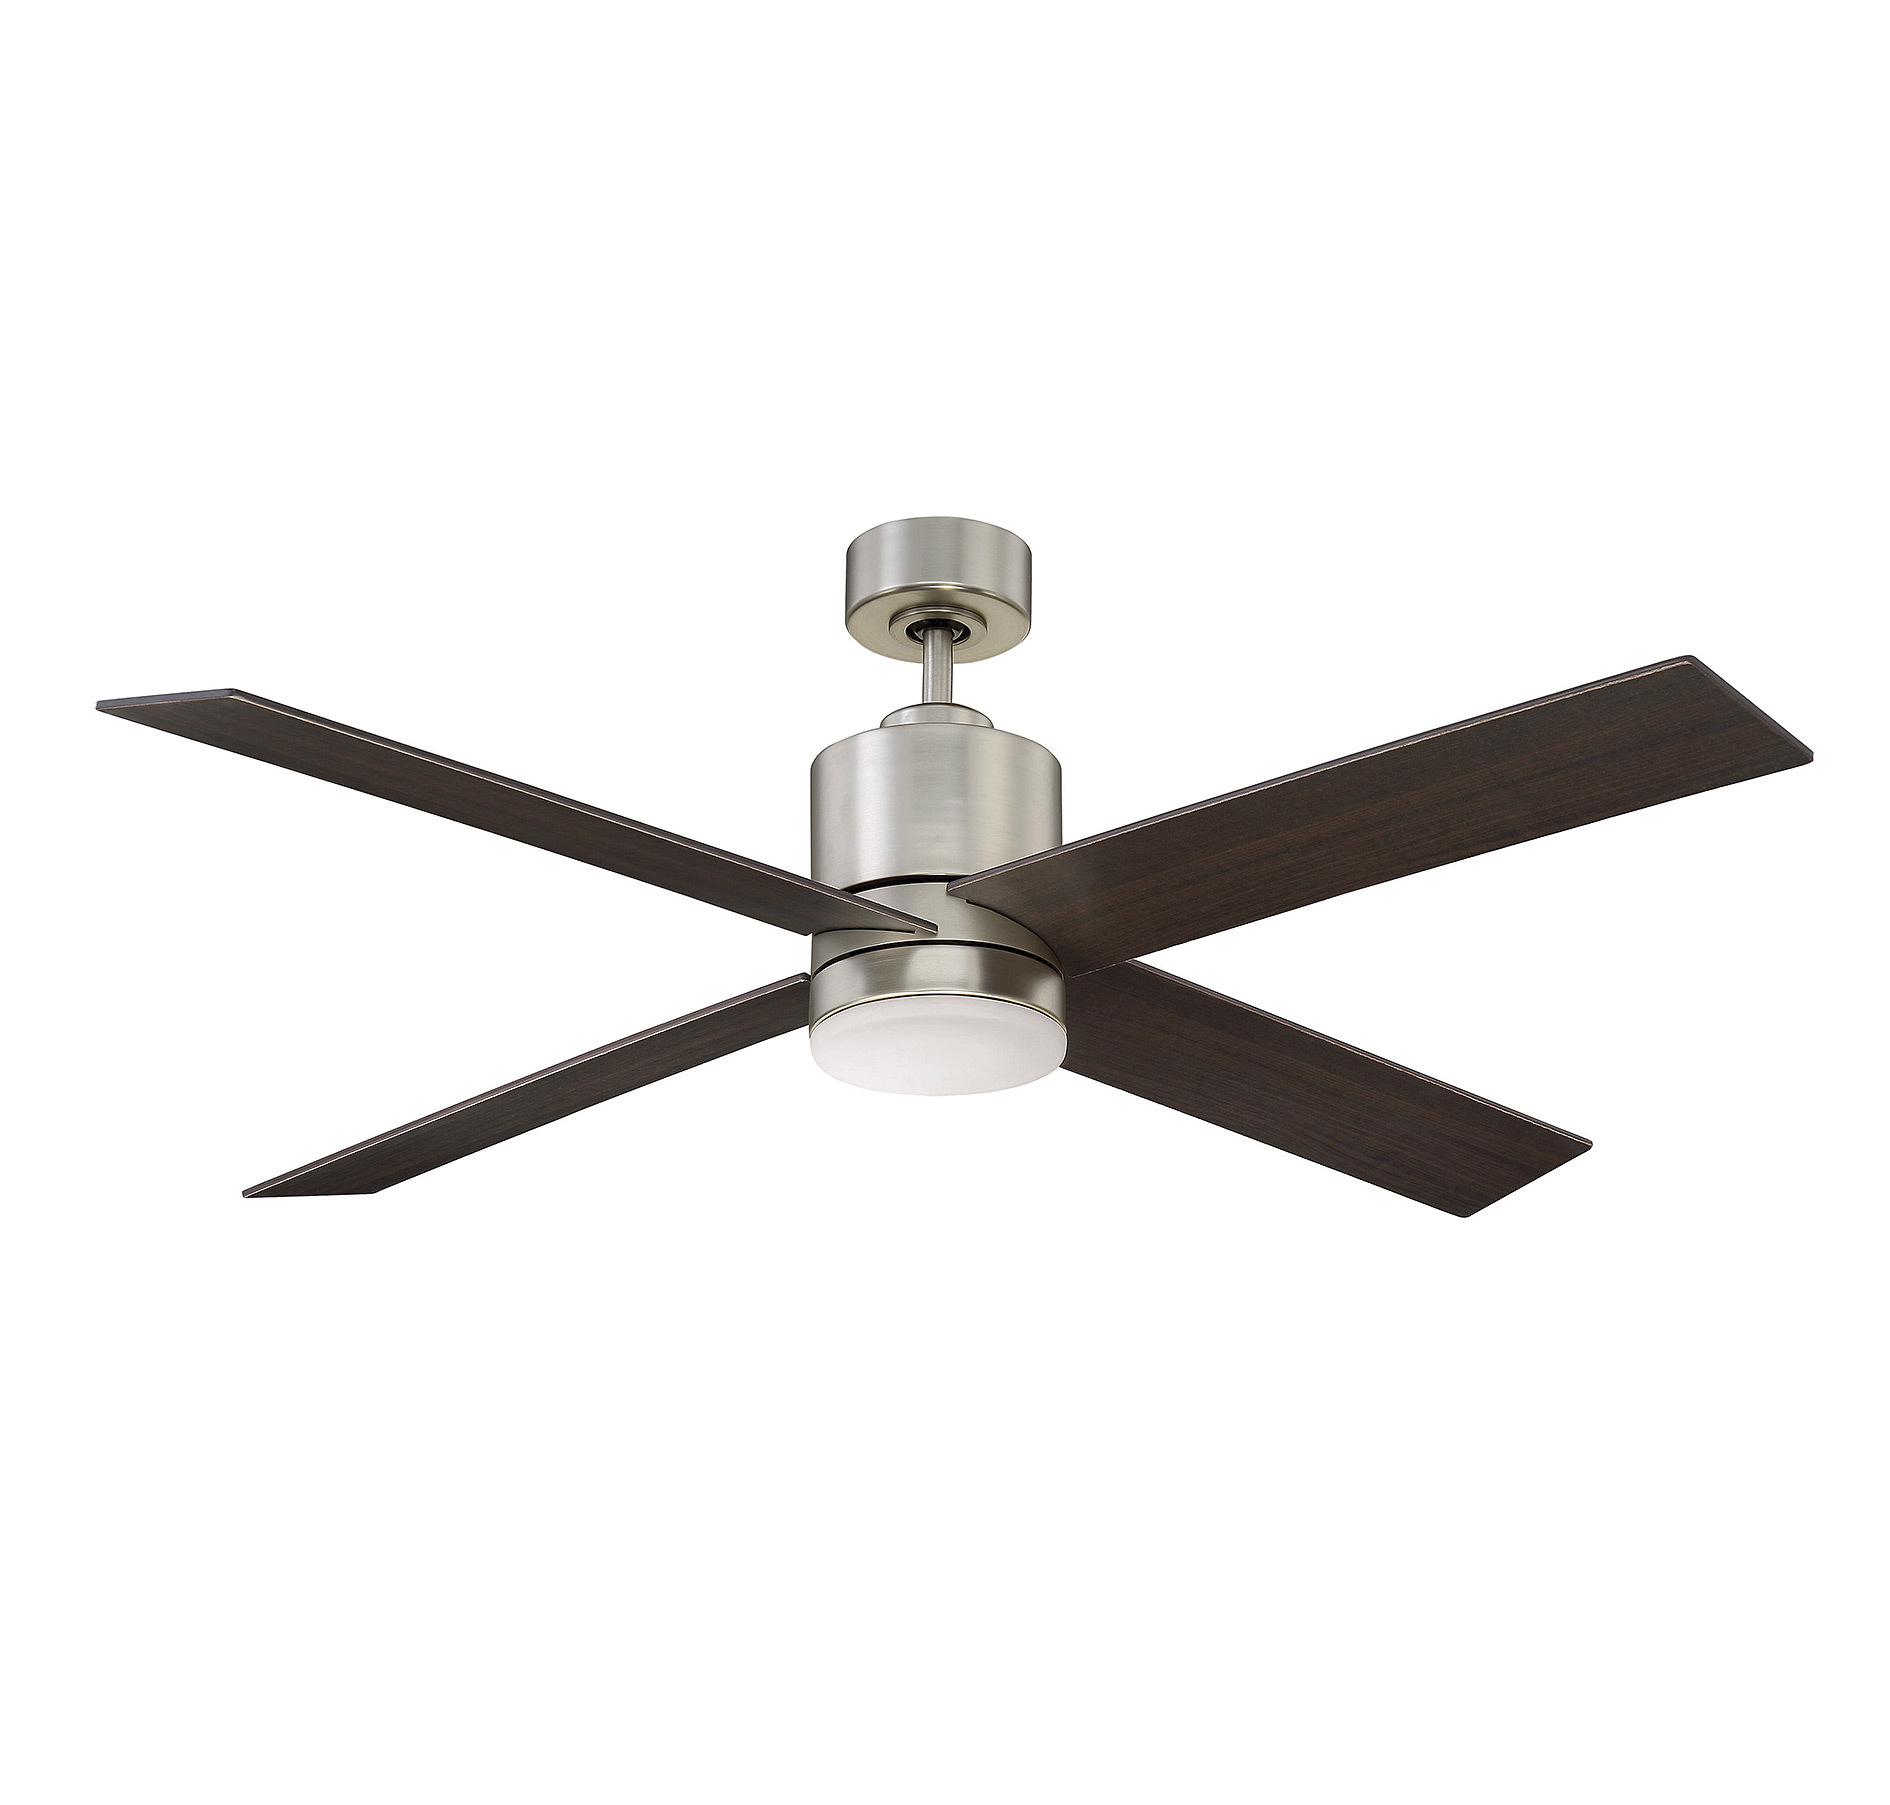 Dayton Ceiling Fan with Light by Savoy House | 52-6110-4CN-SN